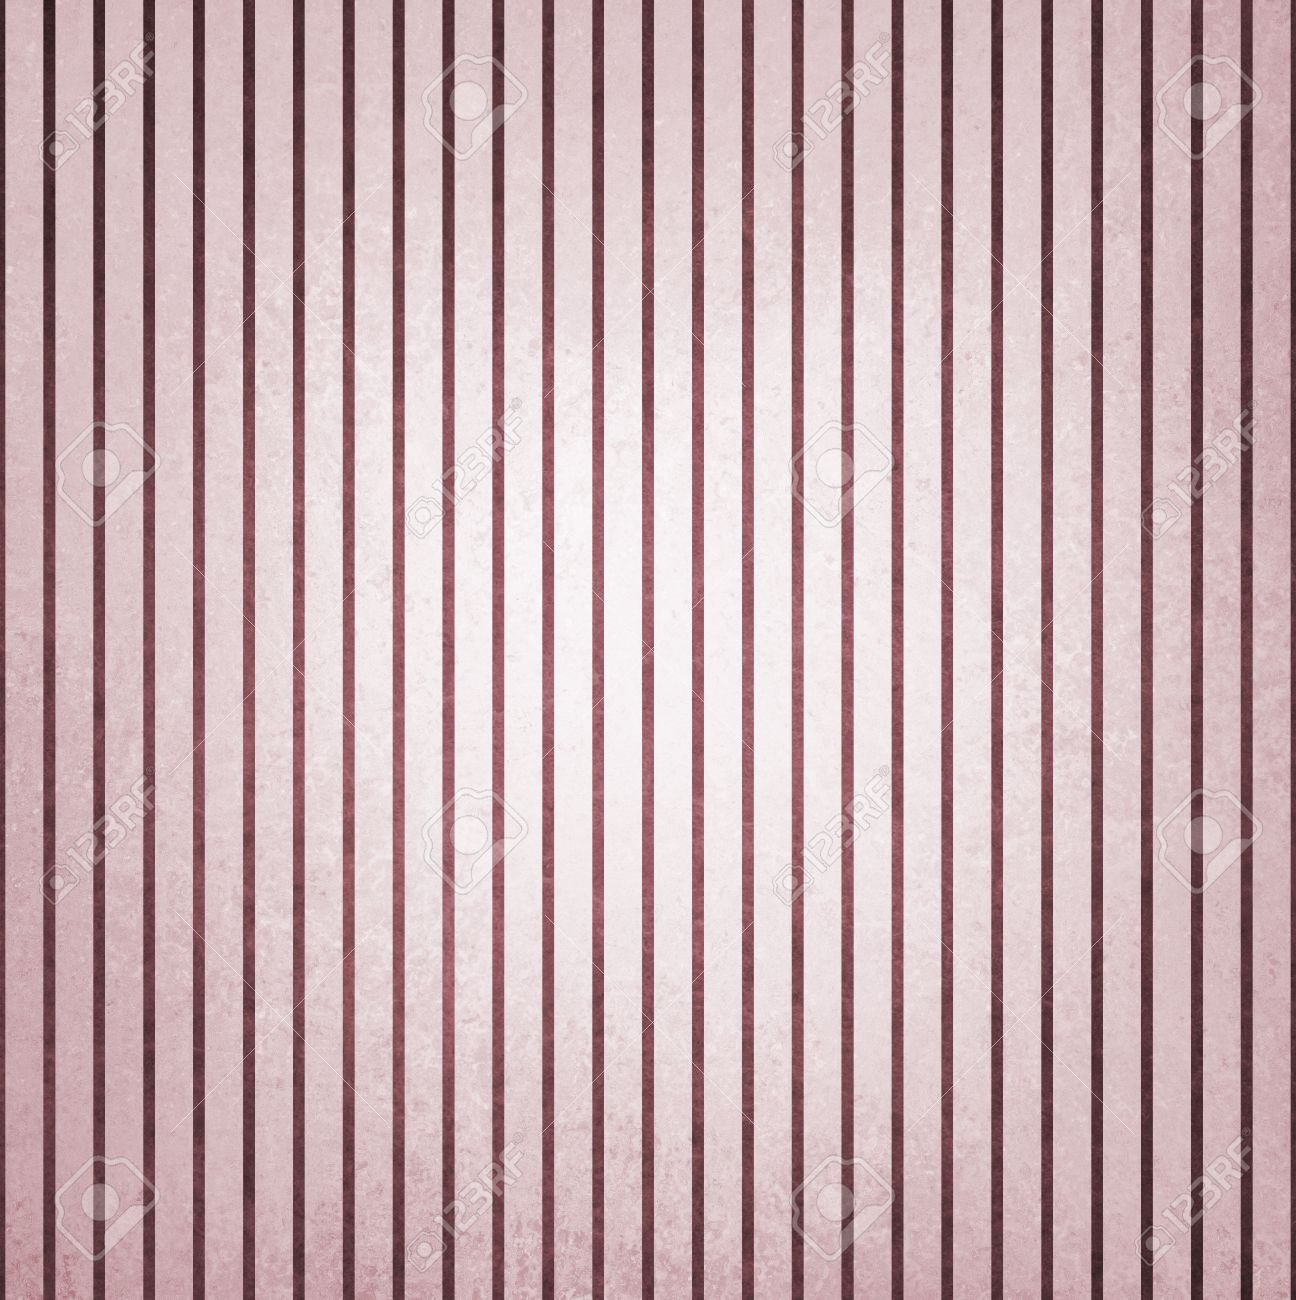 Faded Vintage Burgundy Purple And White Striped Background Shabby Chic Line Design Element On Distressed